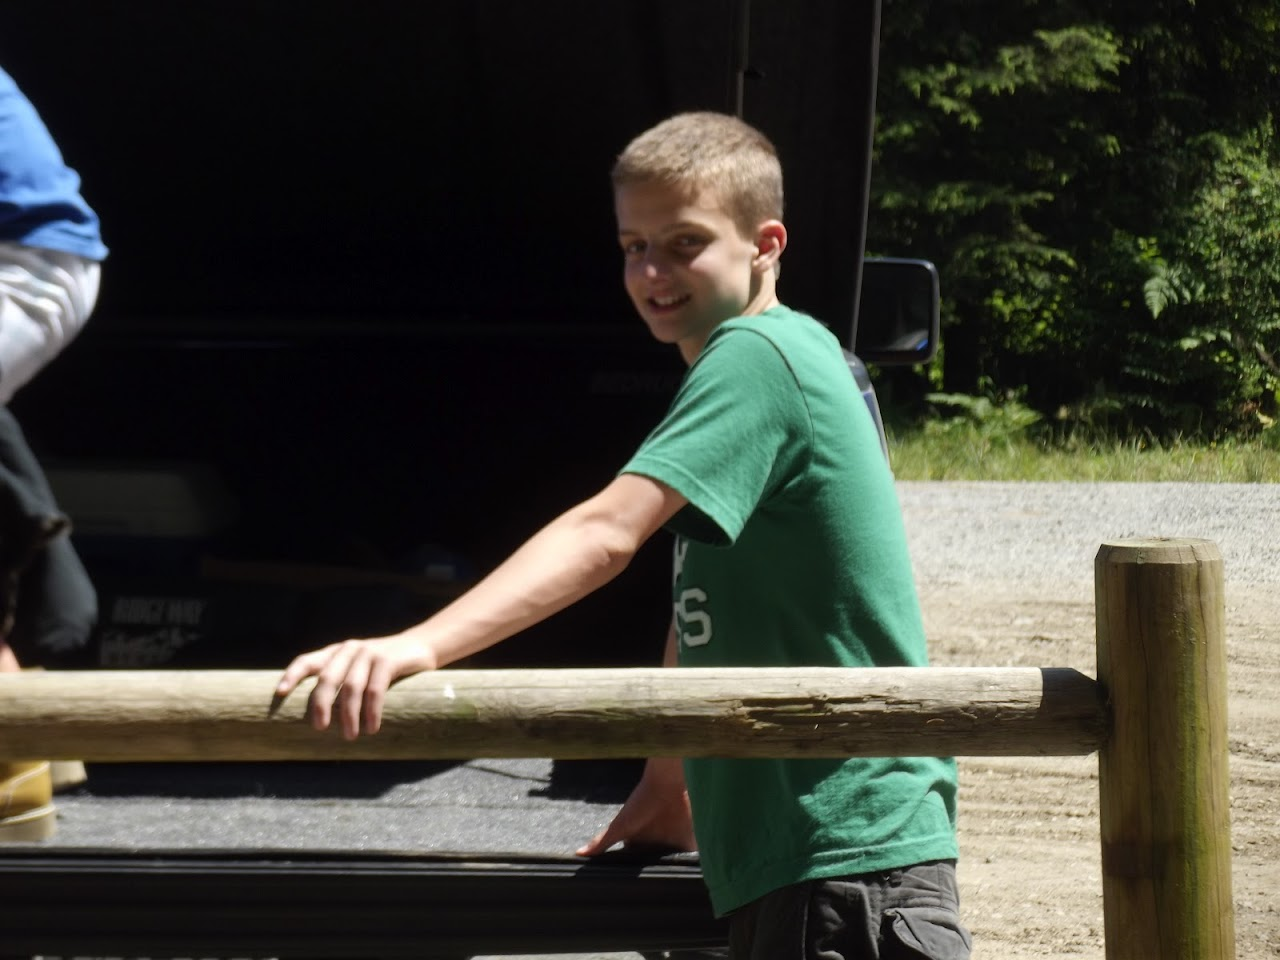 Camp Pigott - 2012 Summer Camp - camp pigott 020.JPG